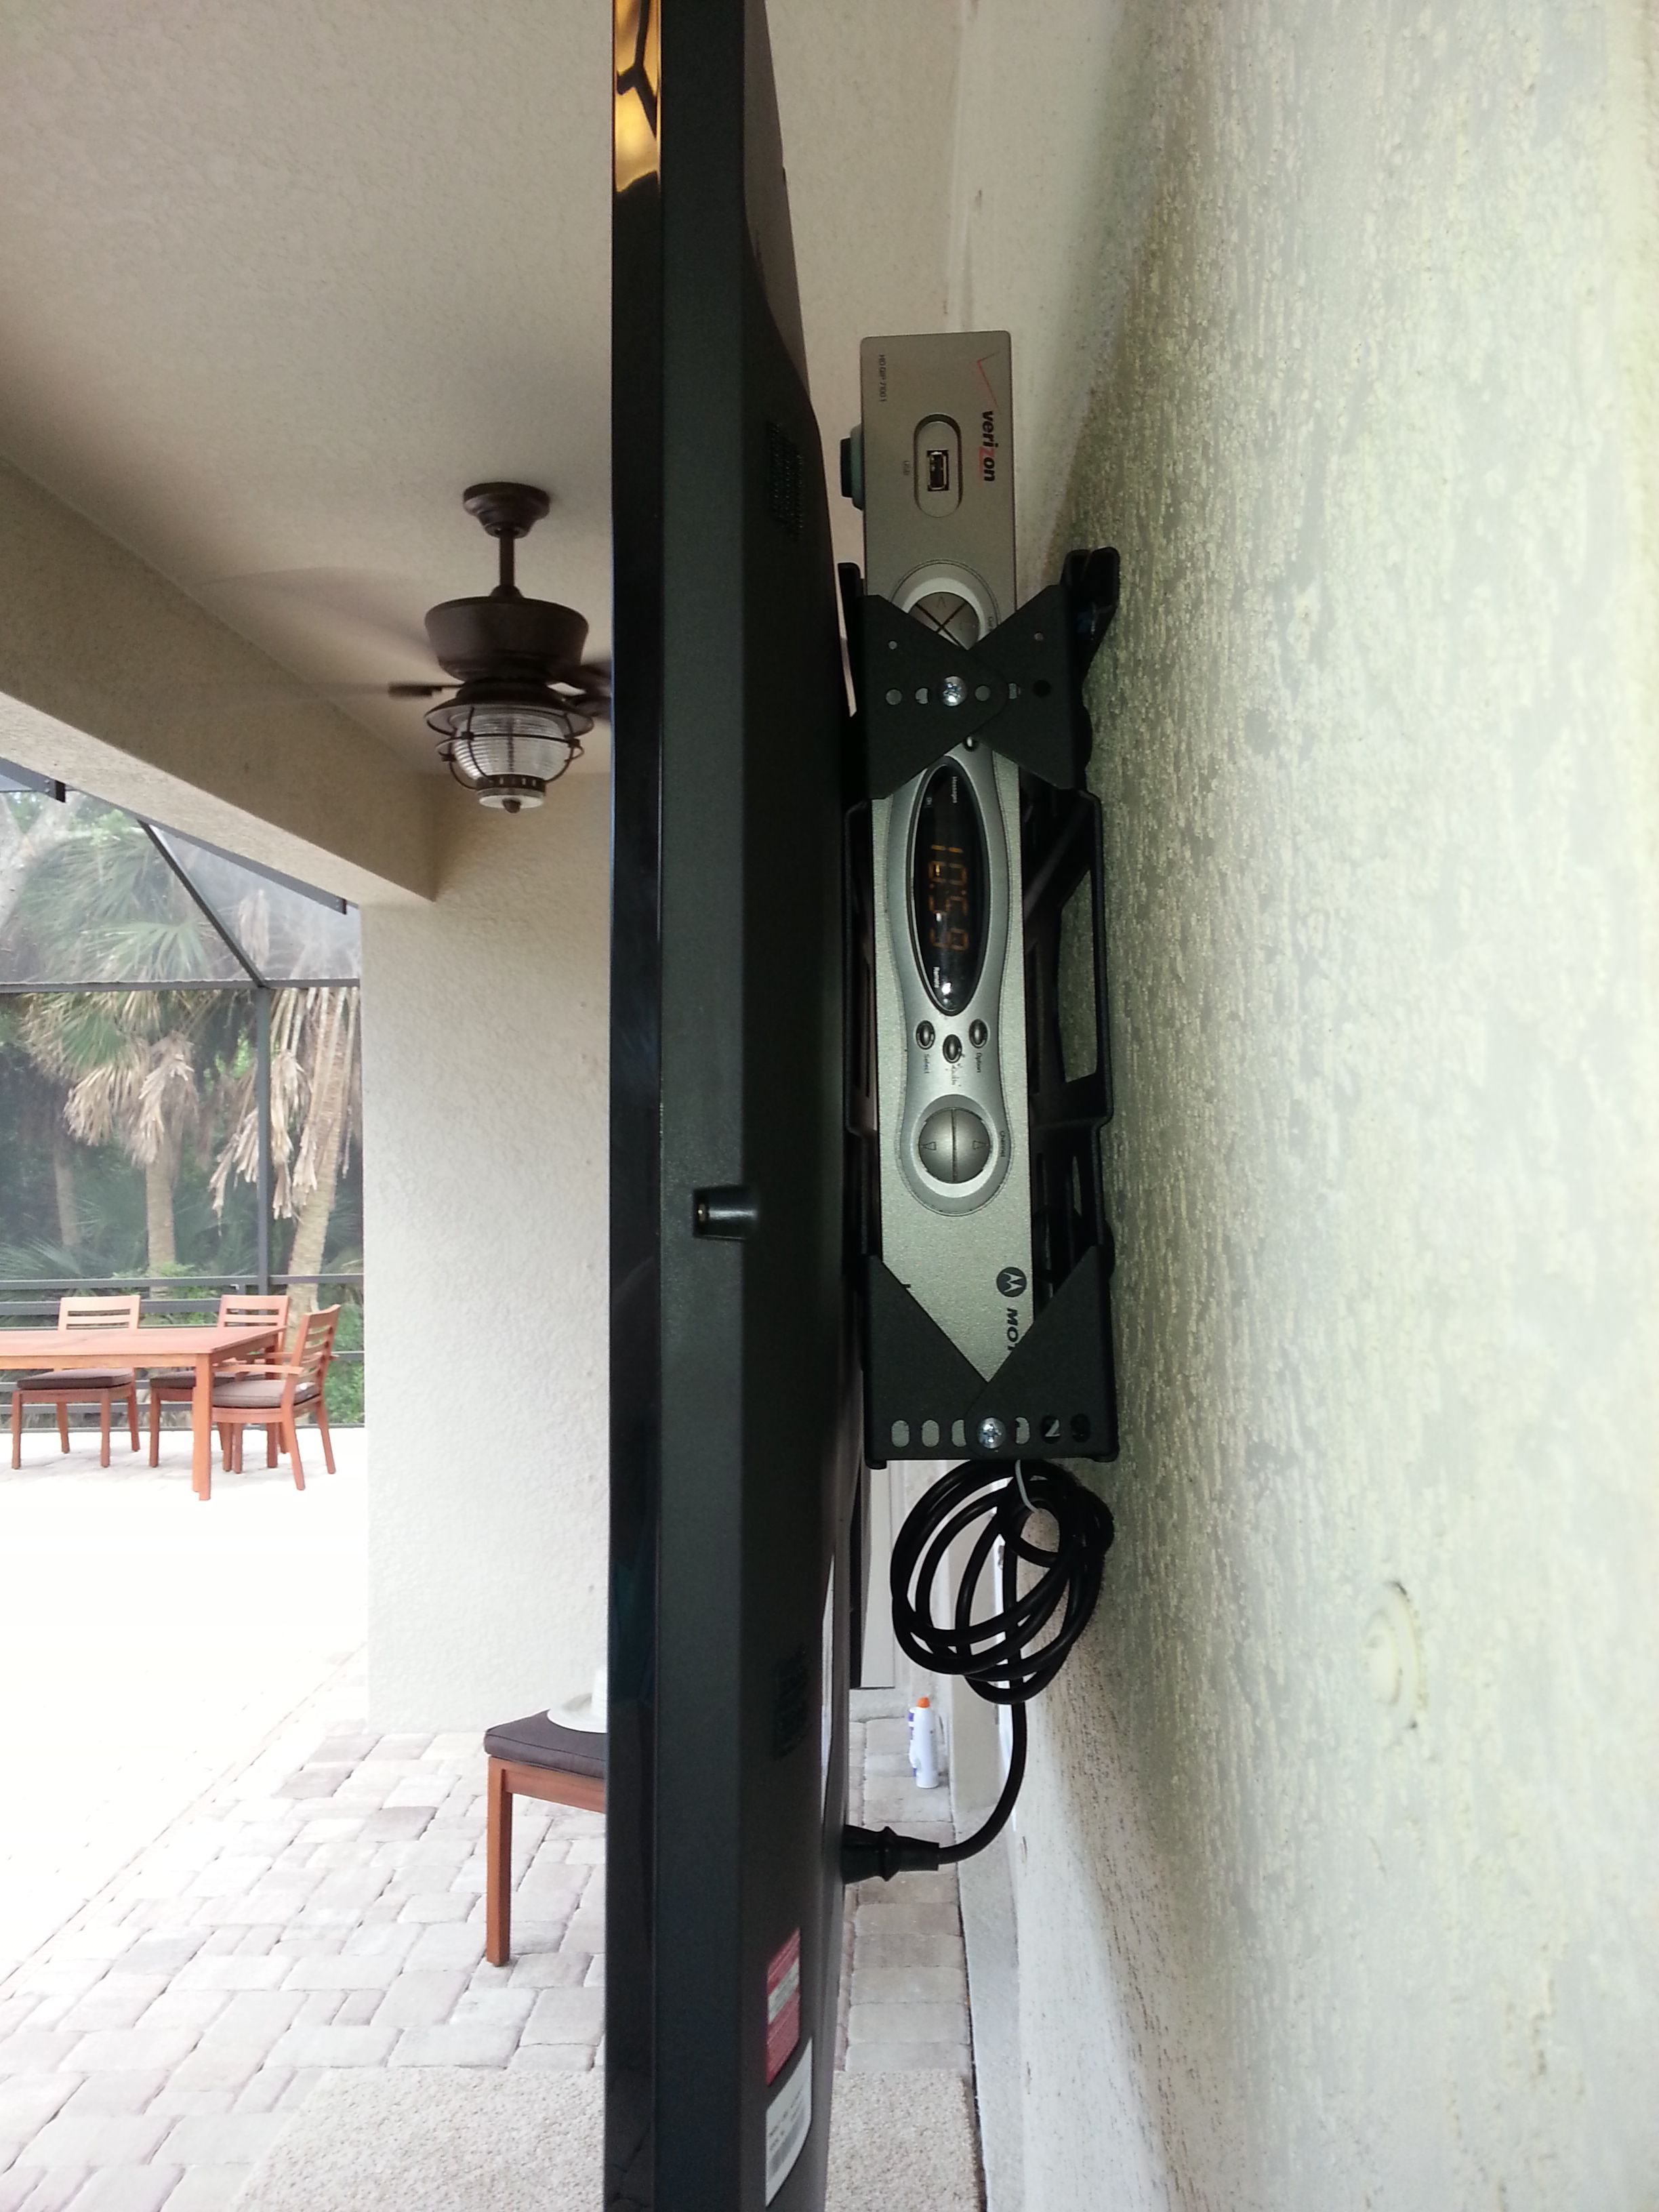 How To Mount Your Tv Outside And Hide The Cable Box Wires Behind It